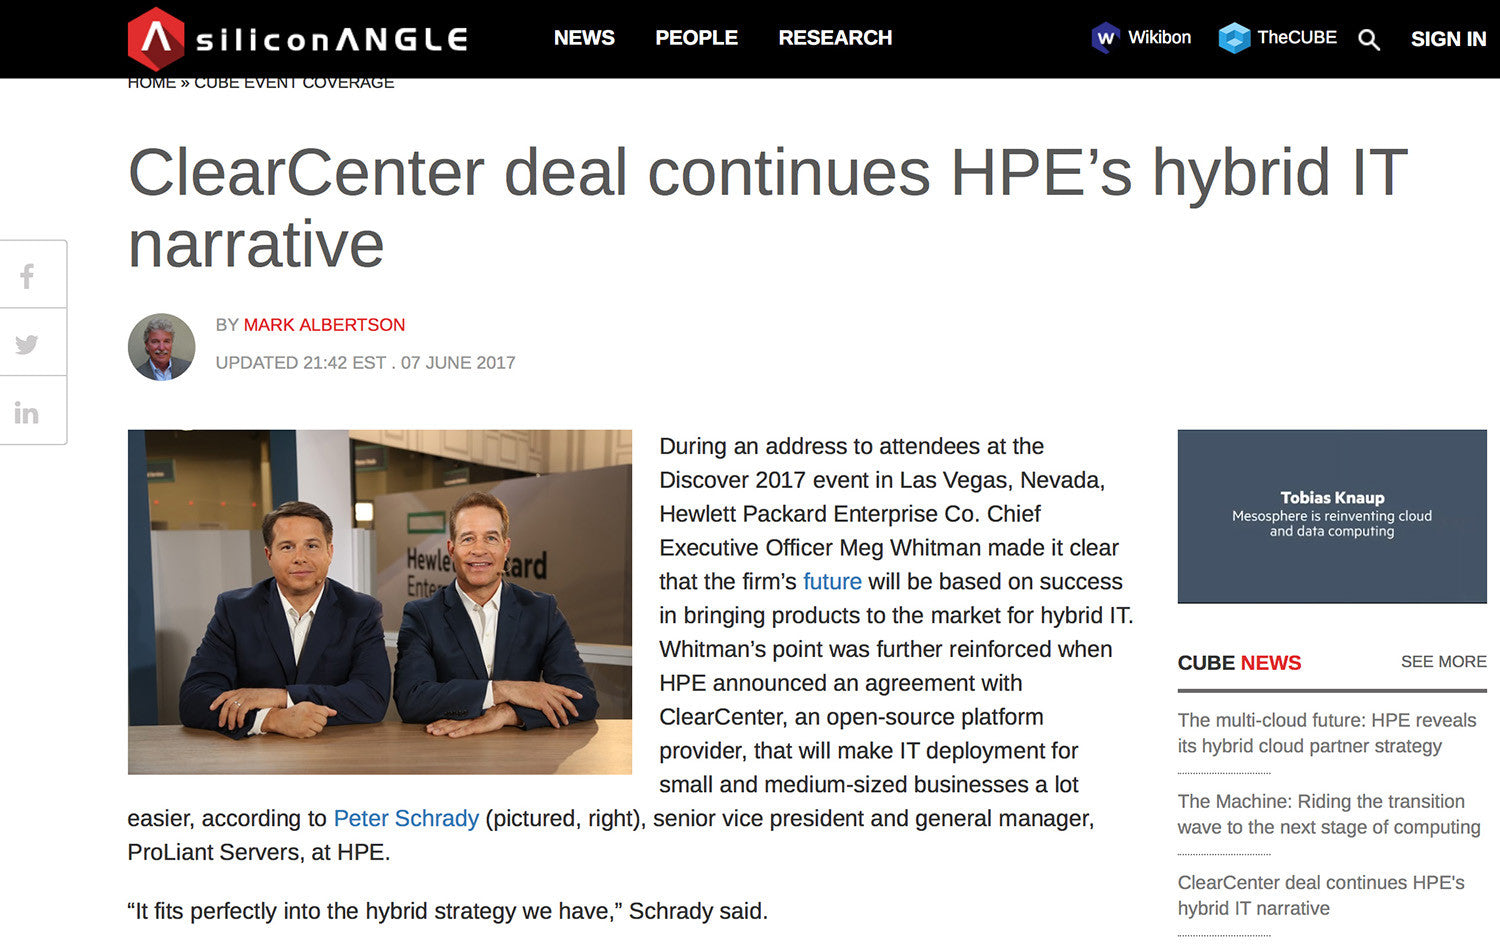 ClearCenter deal continues HPE's hybrid IT narrative